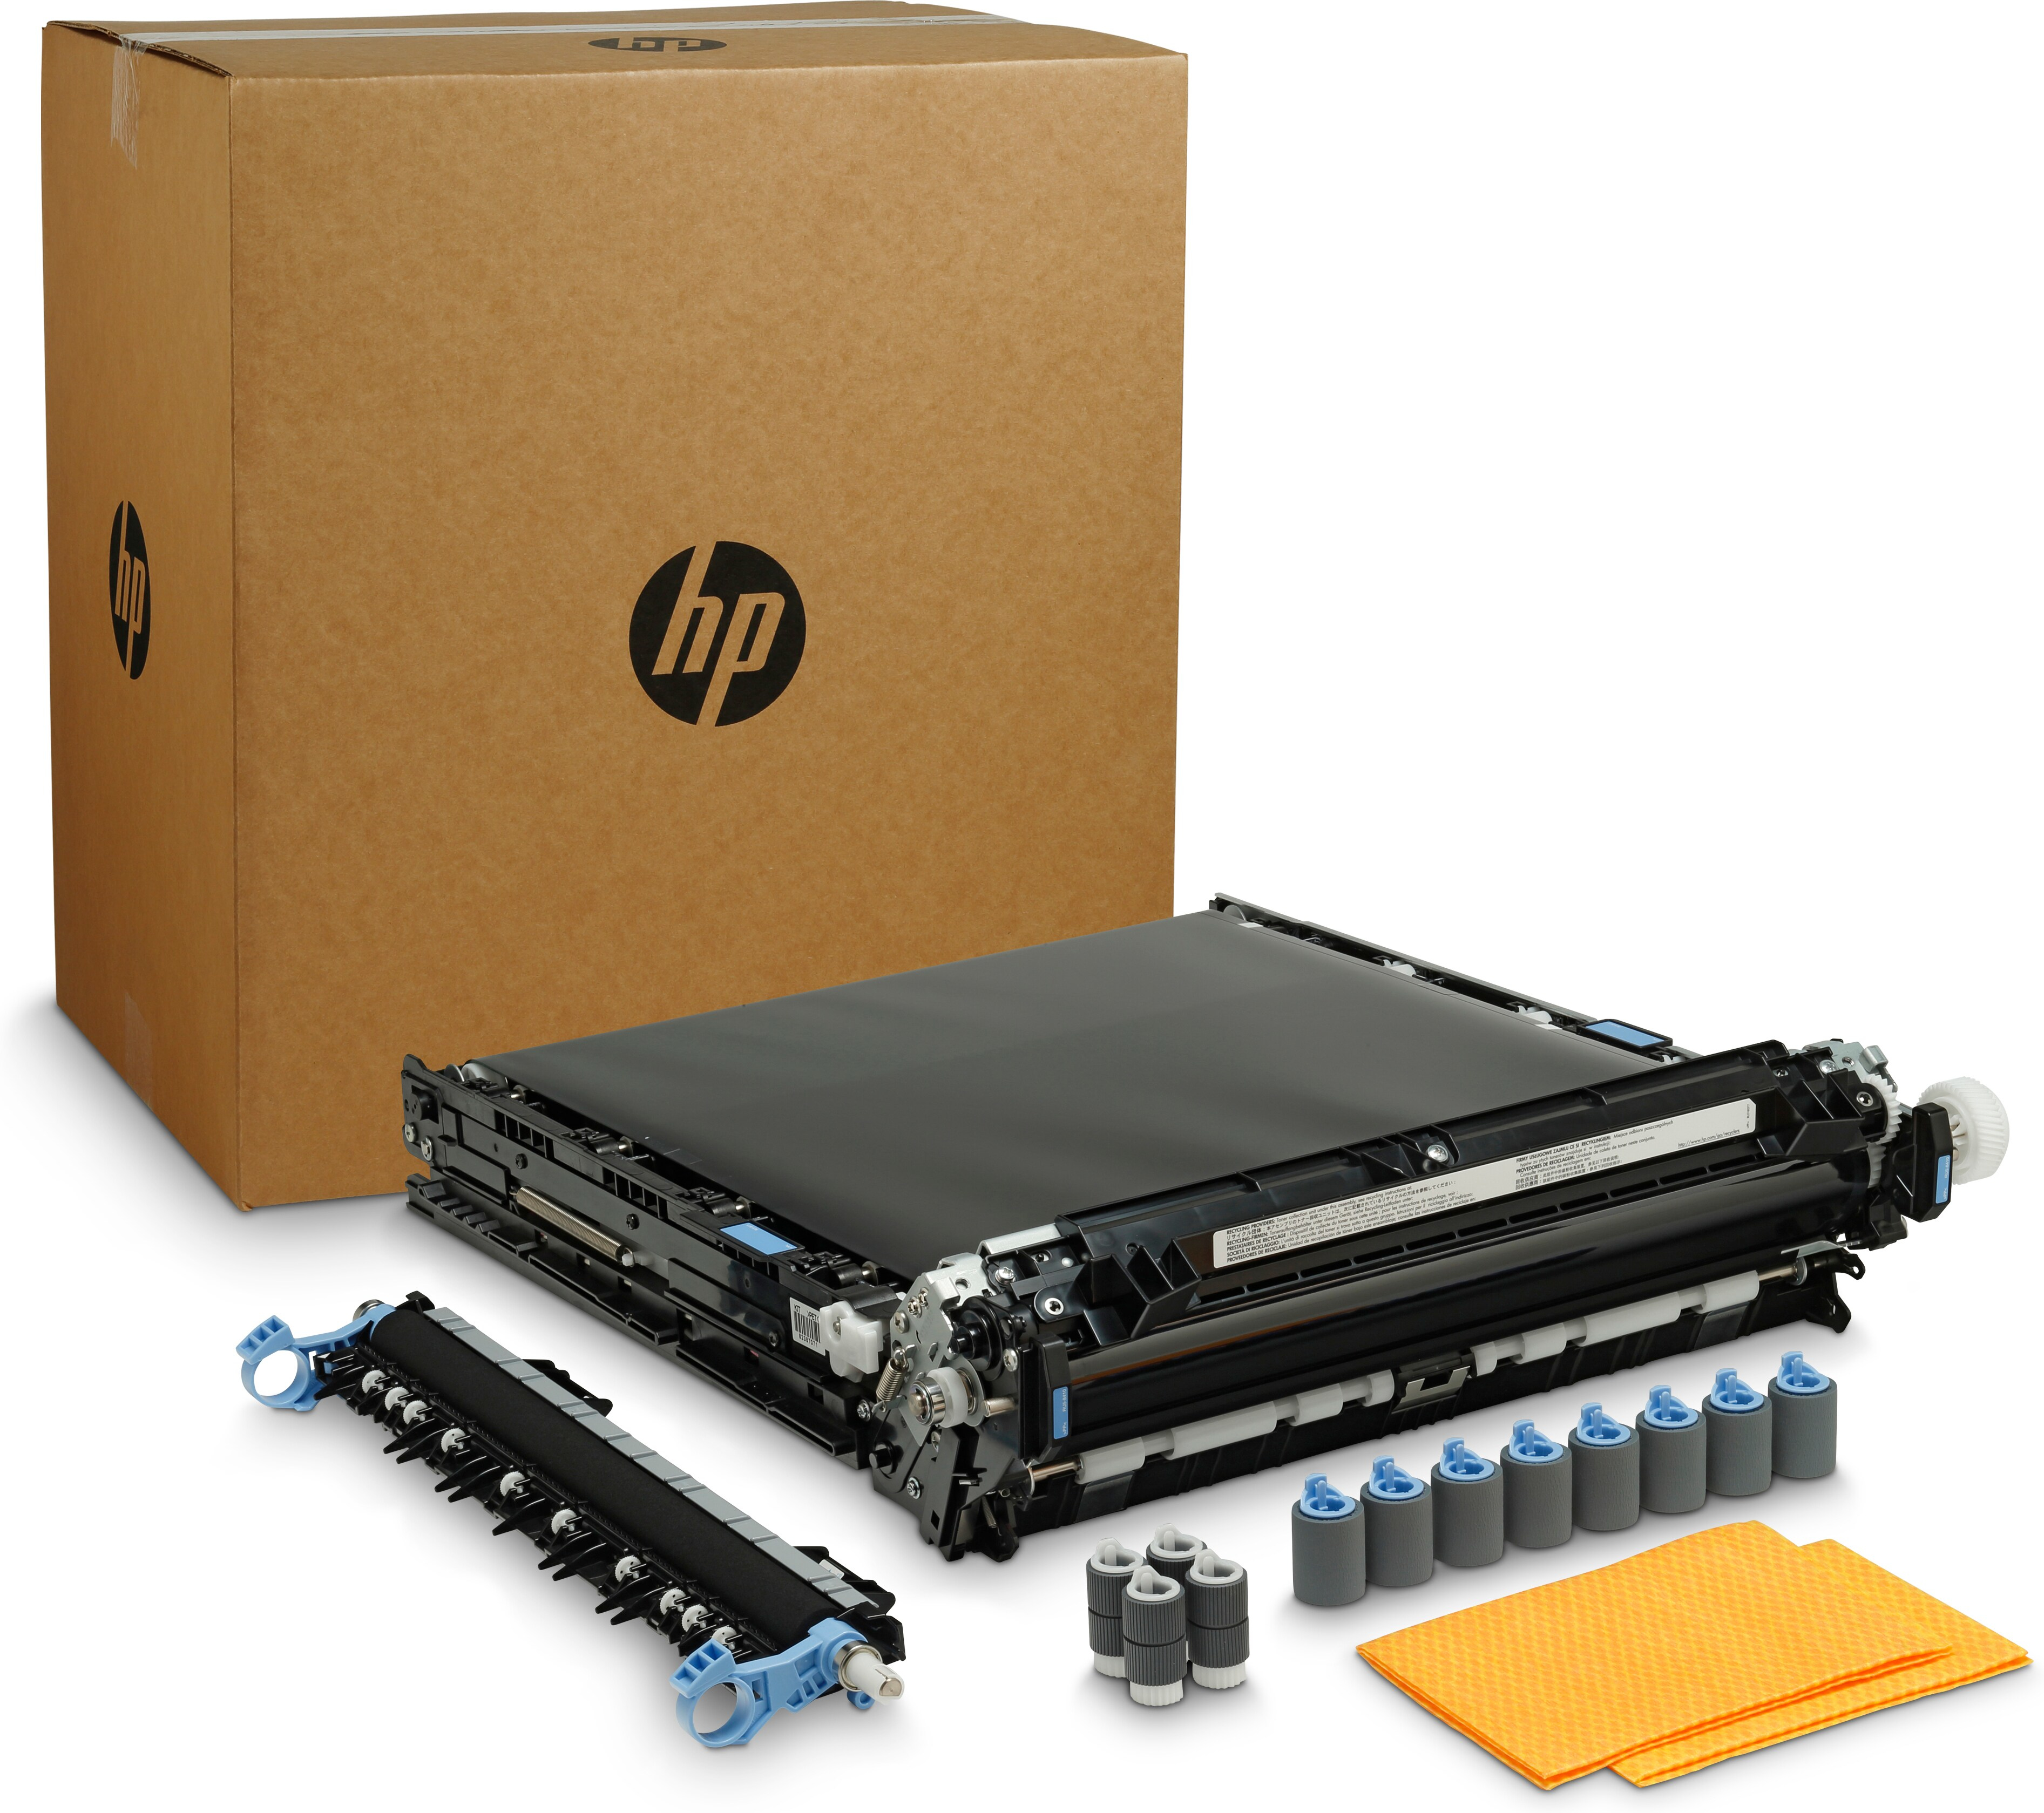 Hpd7h14a       Hp M855 Transfer Kit           M855                                                         - UF01